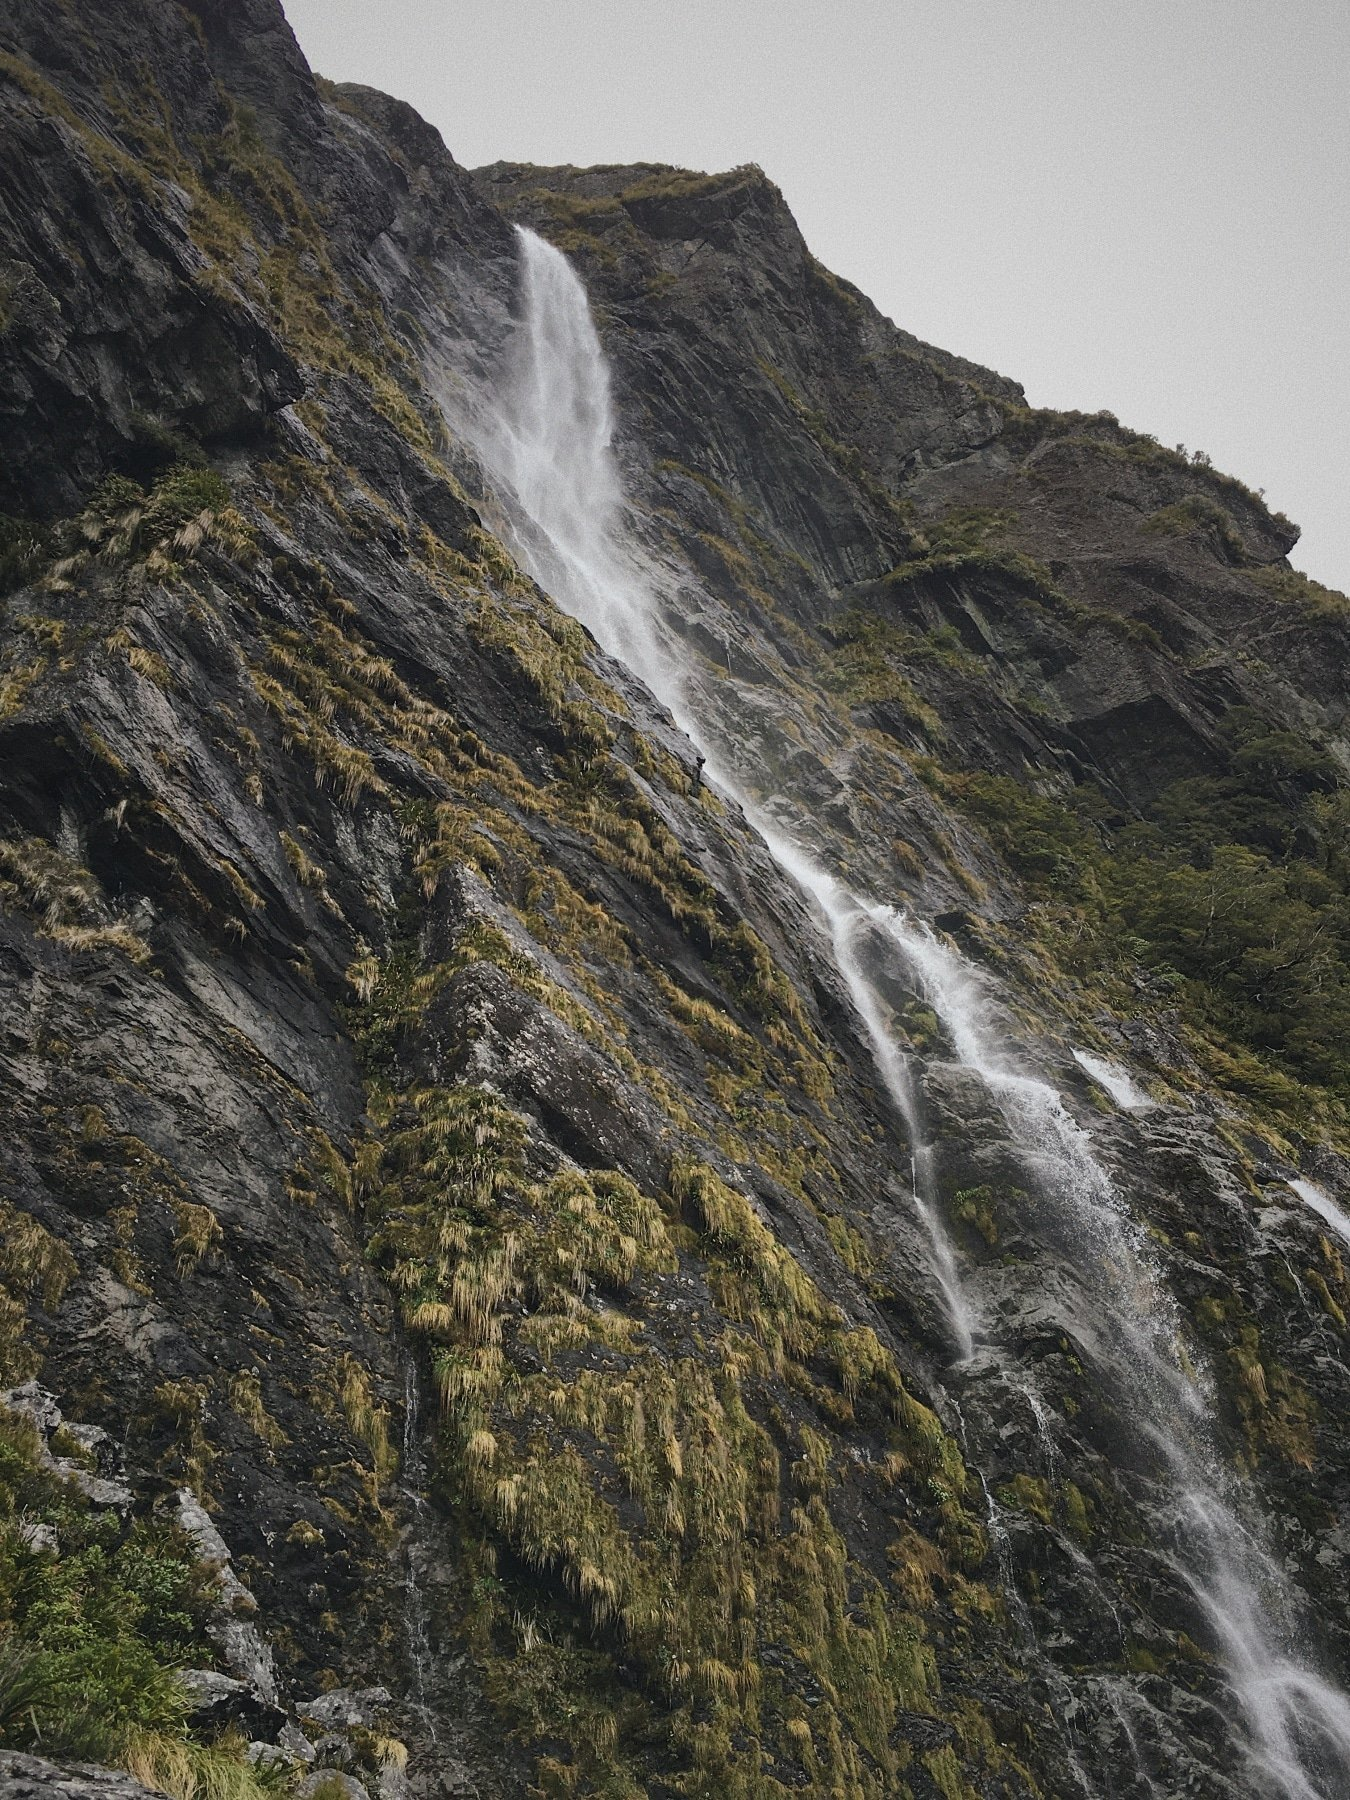 One of a few beautiful waterfalls on the Routeburn Track